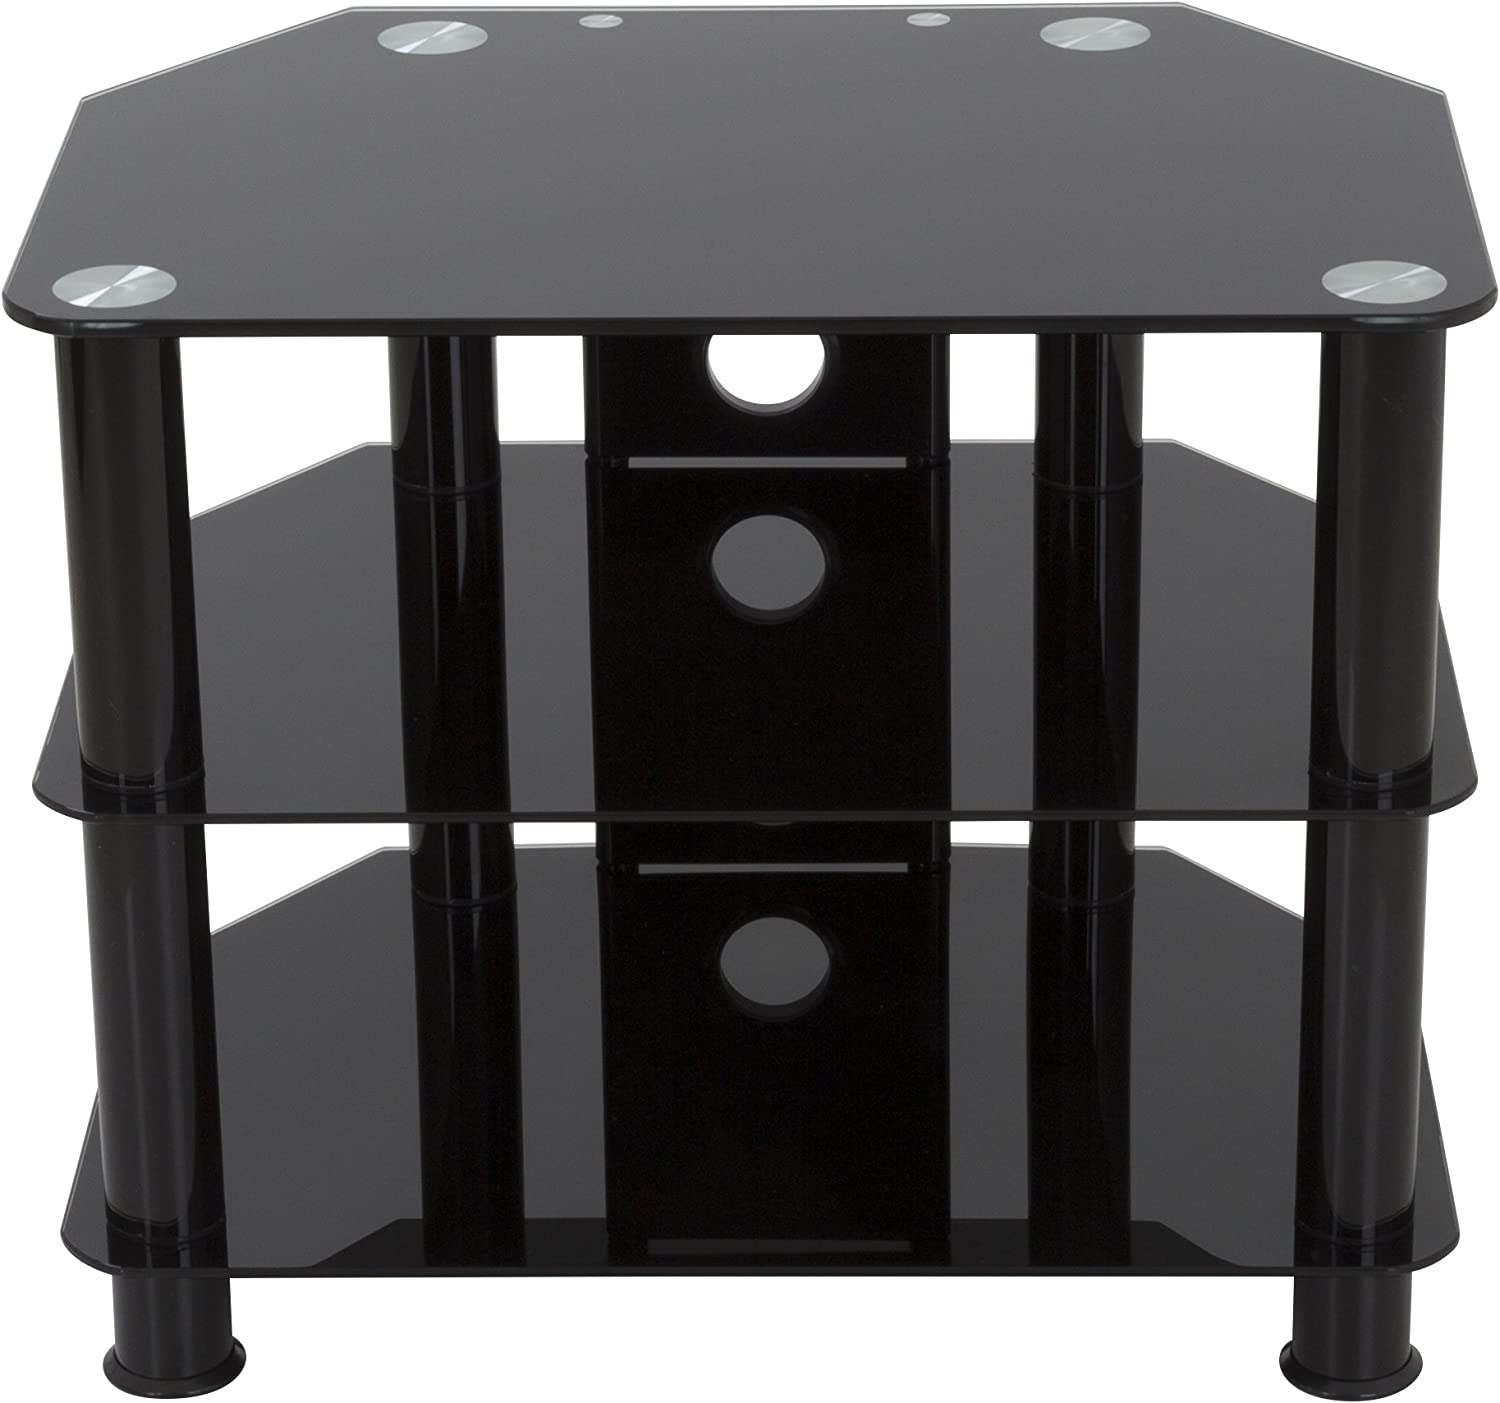 AVF SDC600CMBB-A TV Stand with Cable Management for up to 32-inch TVs, Black Glass, Black Legs